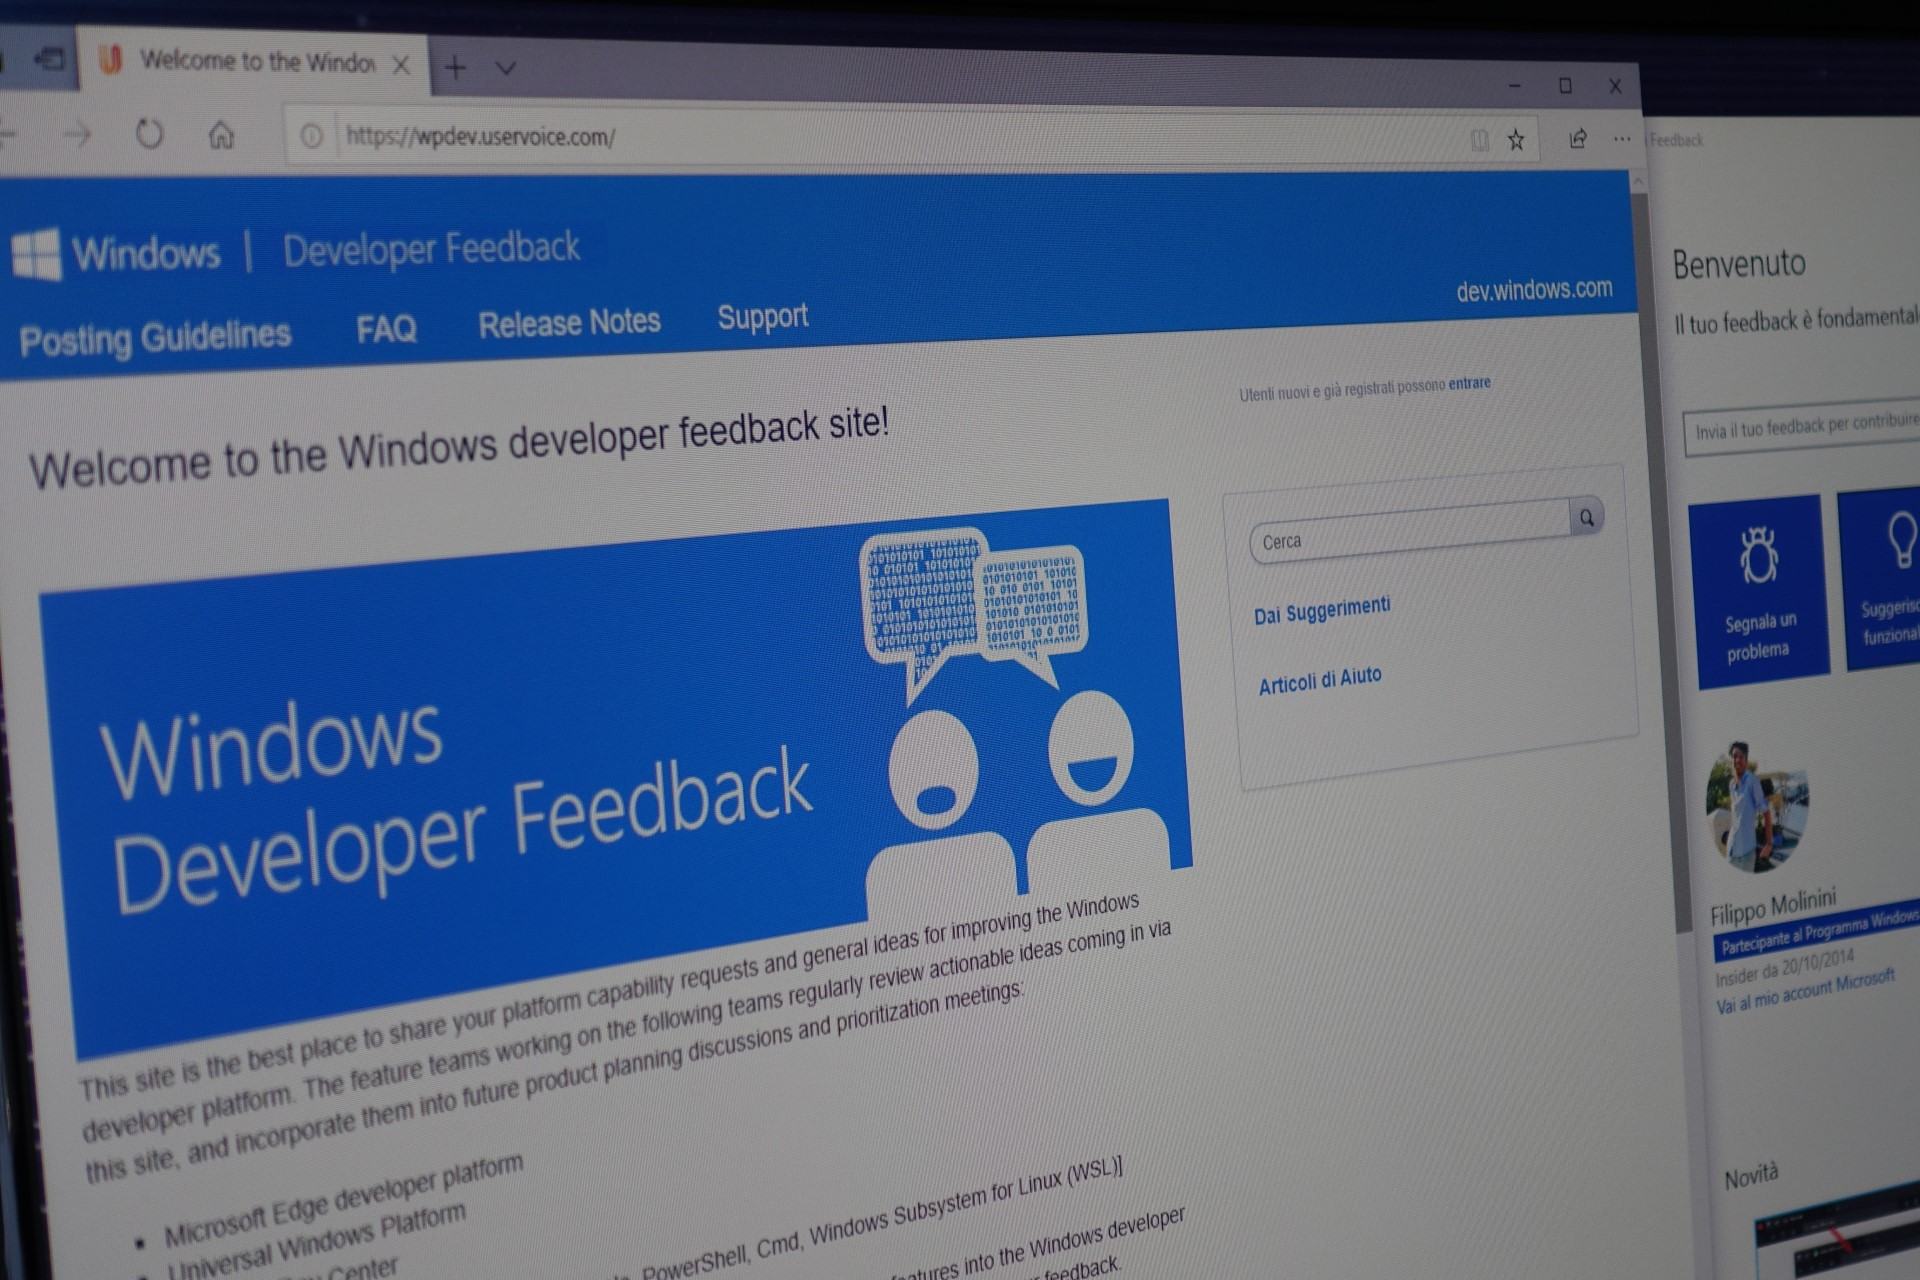 Pagina Windows UserVoice sviluppatori - Hub di Feedback